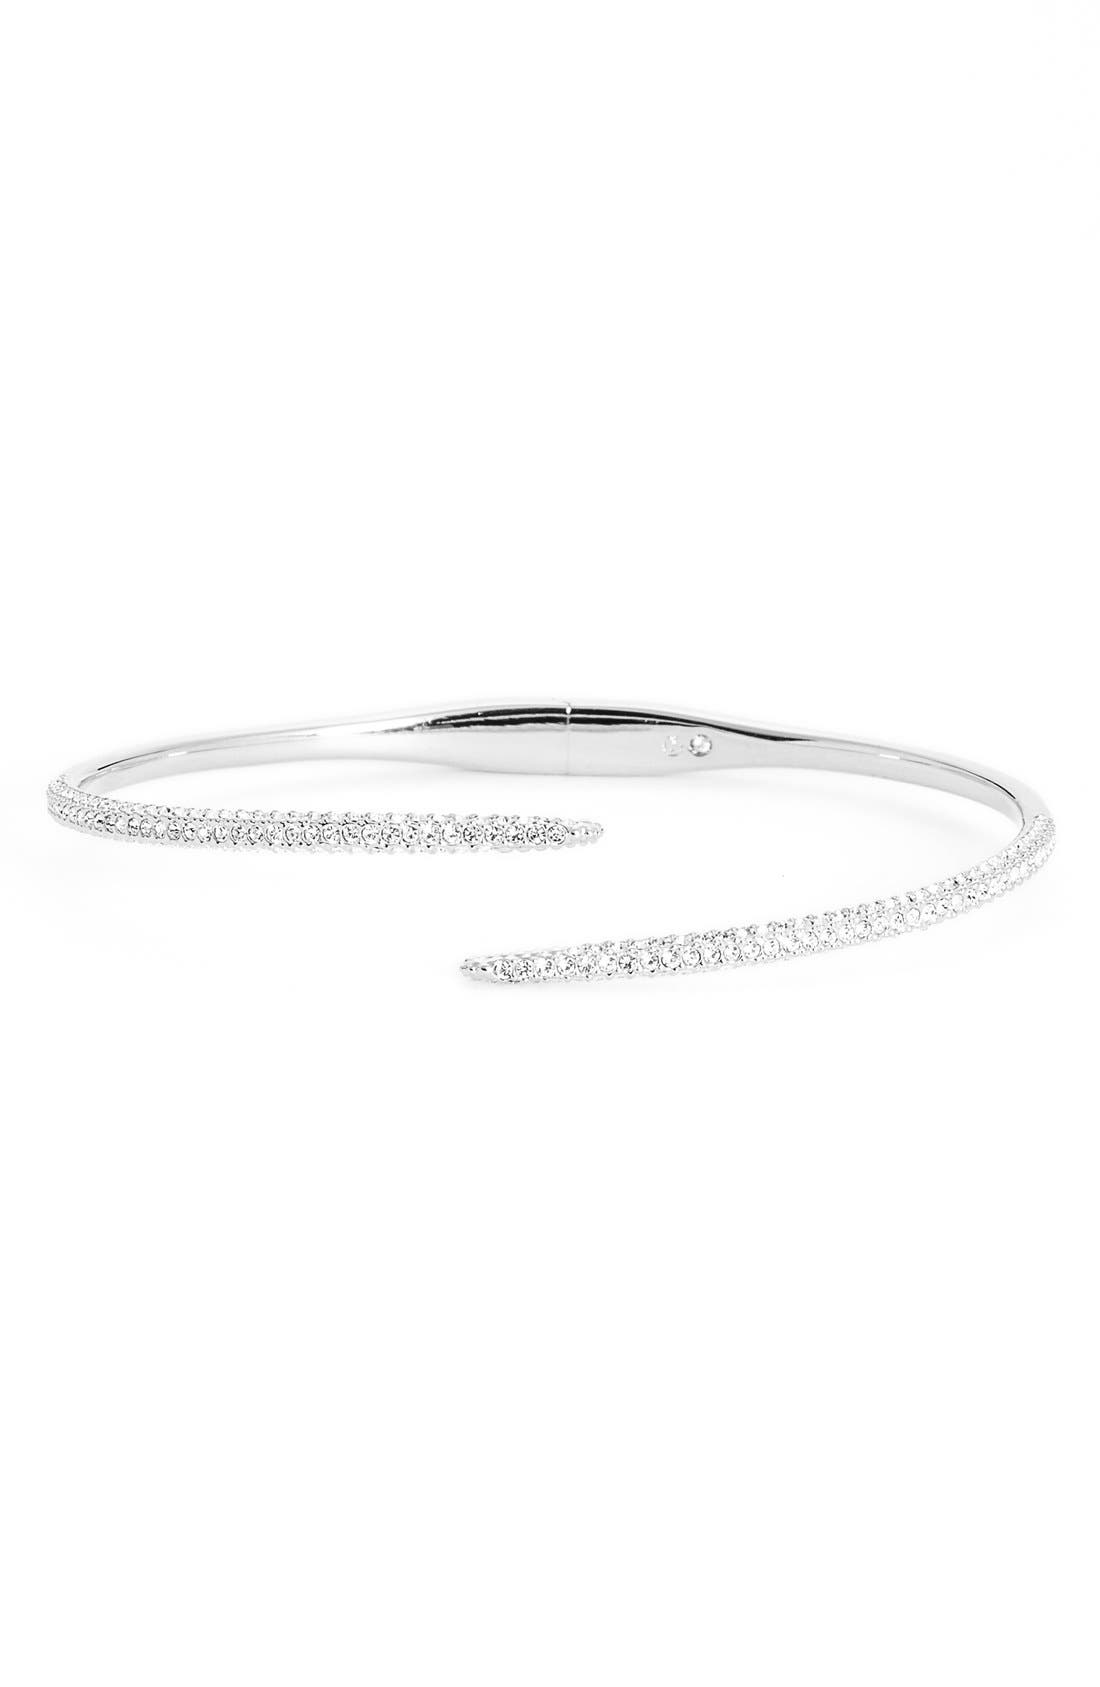 Main Image - Nadri Wrap Hinge Bangle